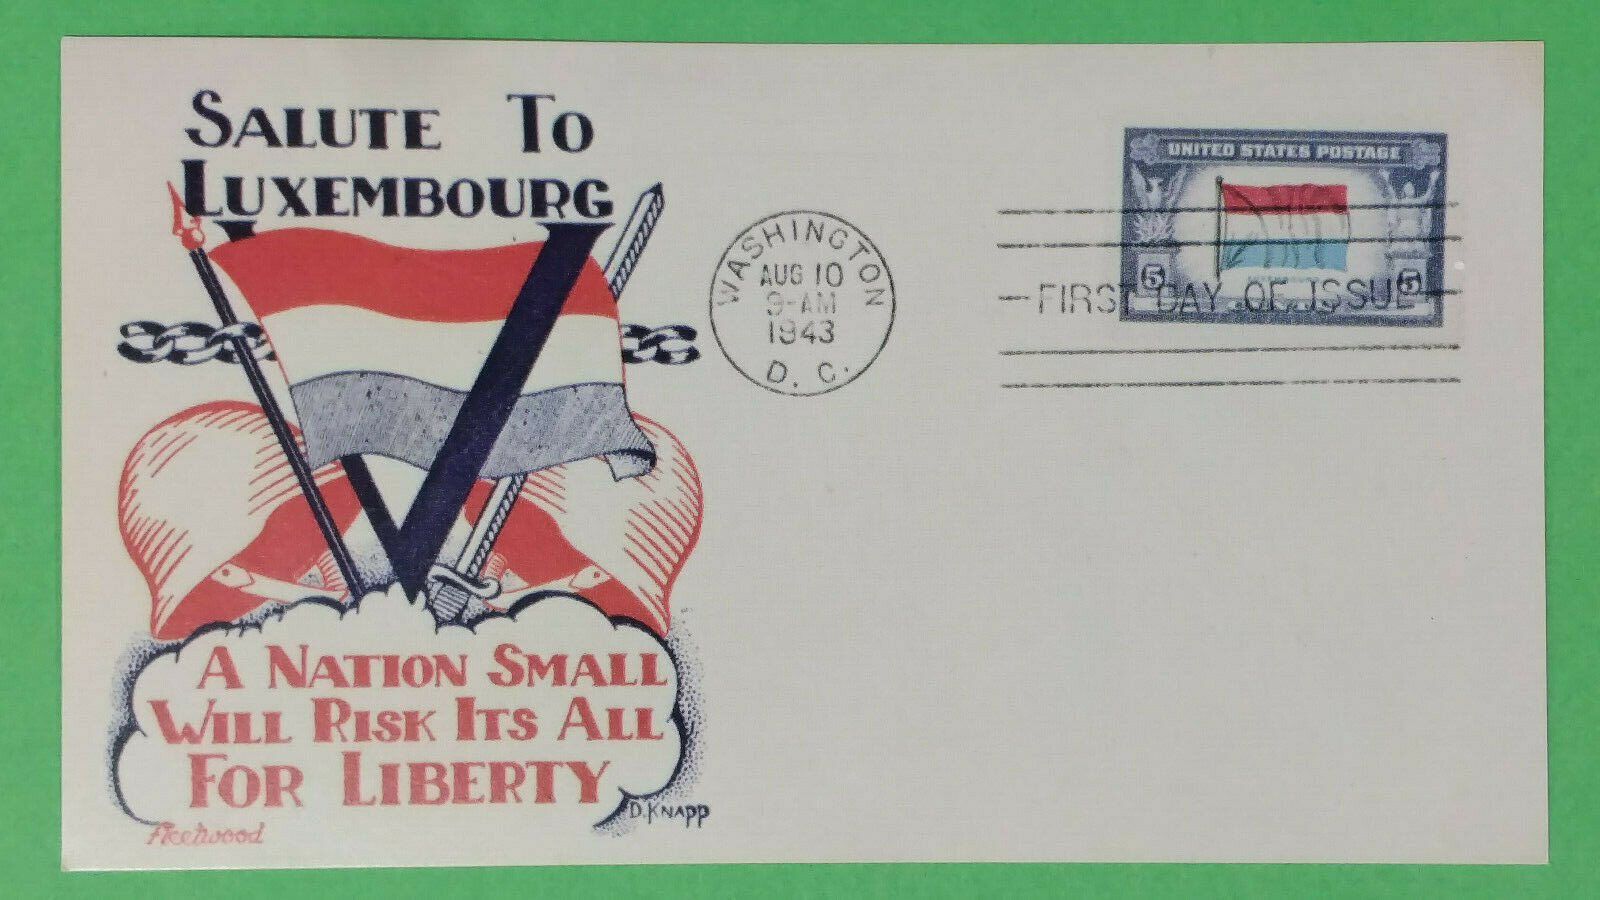 Salute To Luxembourg - Facsimile FDC - Fleetwood Cachet - Aug. 10, 1943 - VGC - $3.39